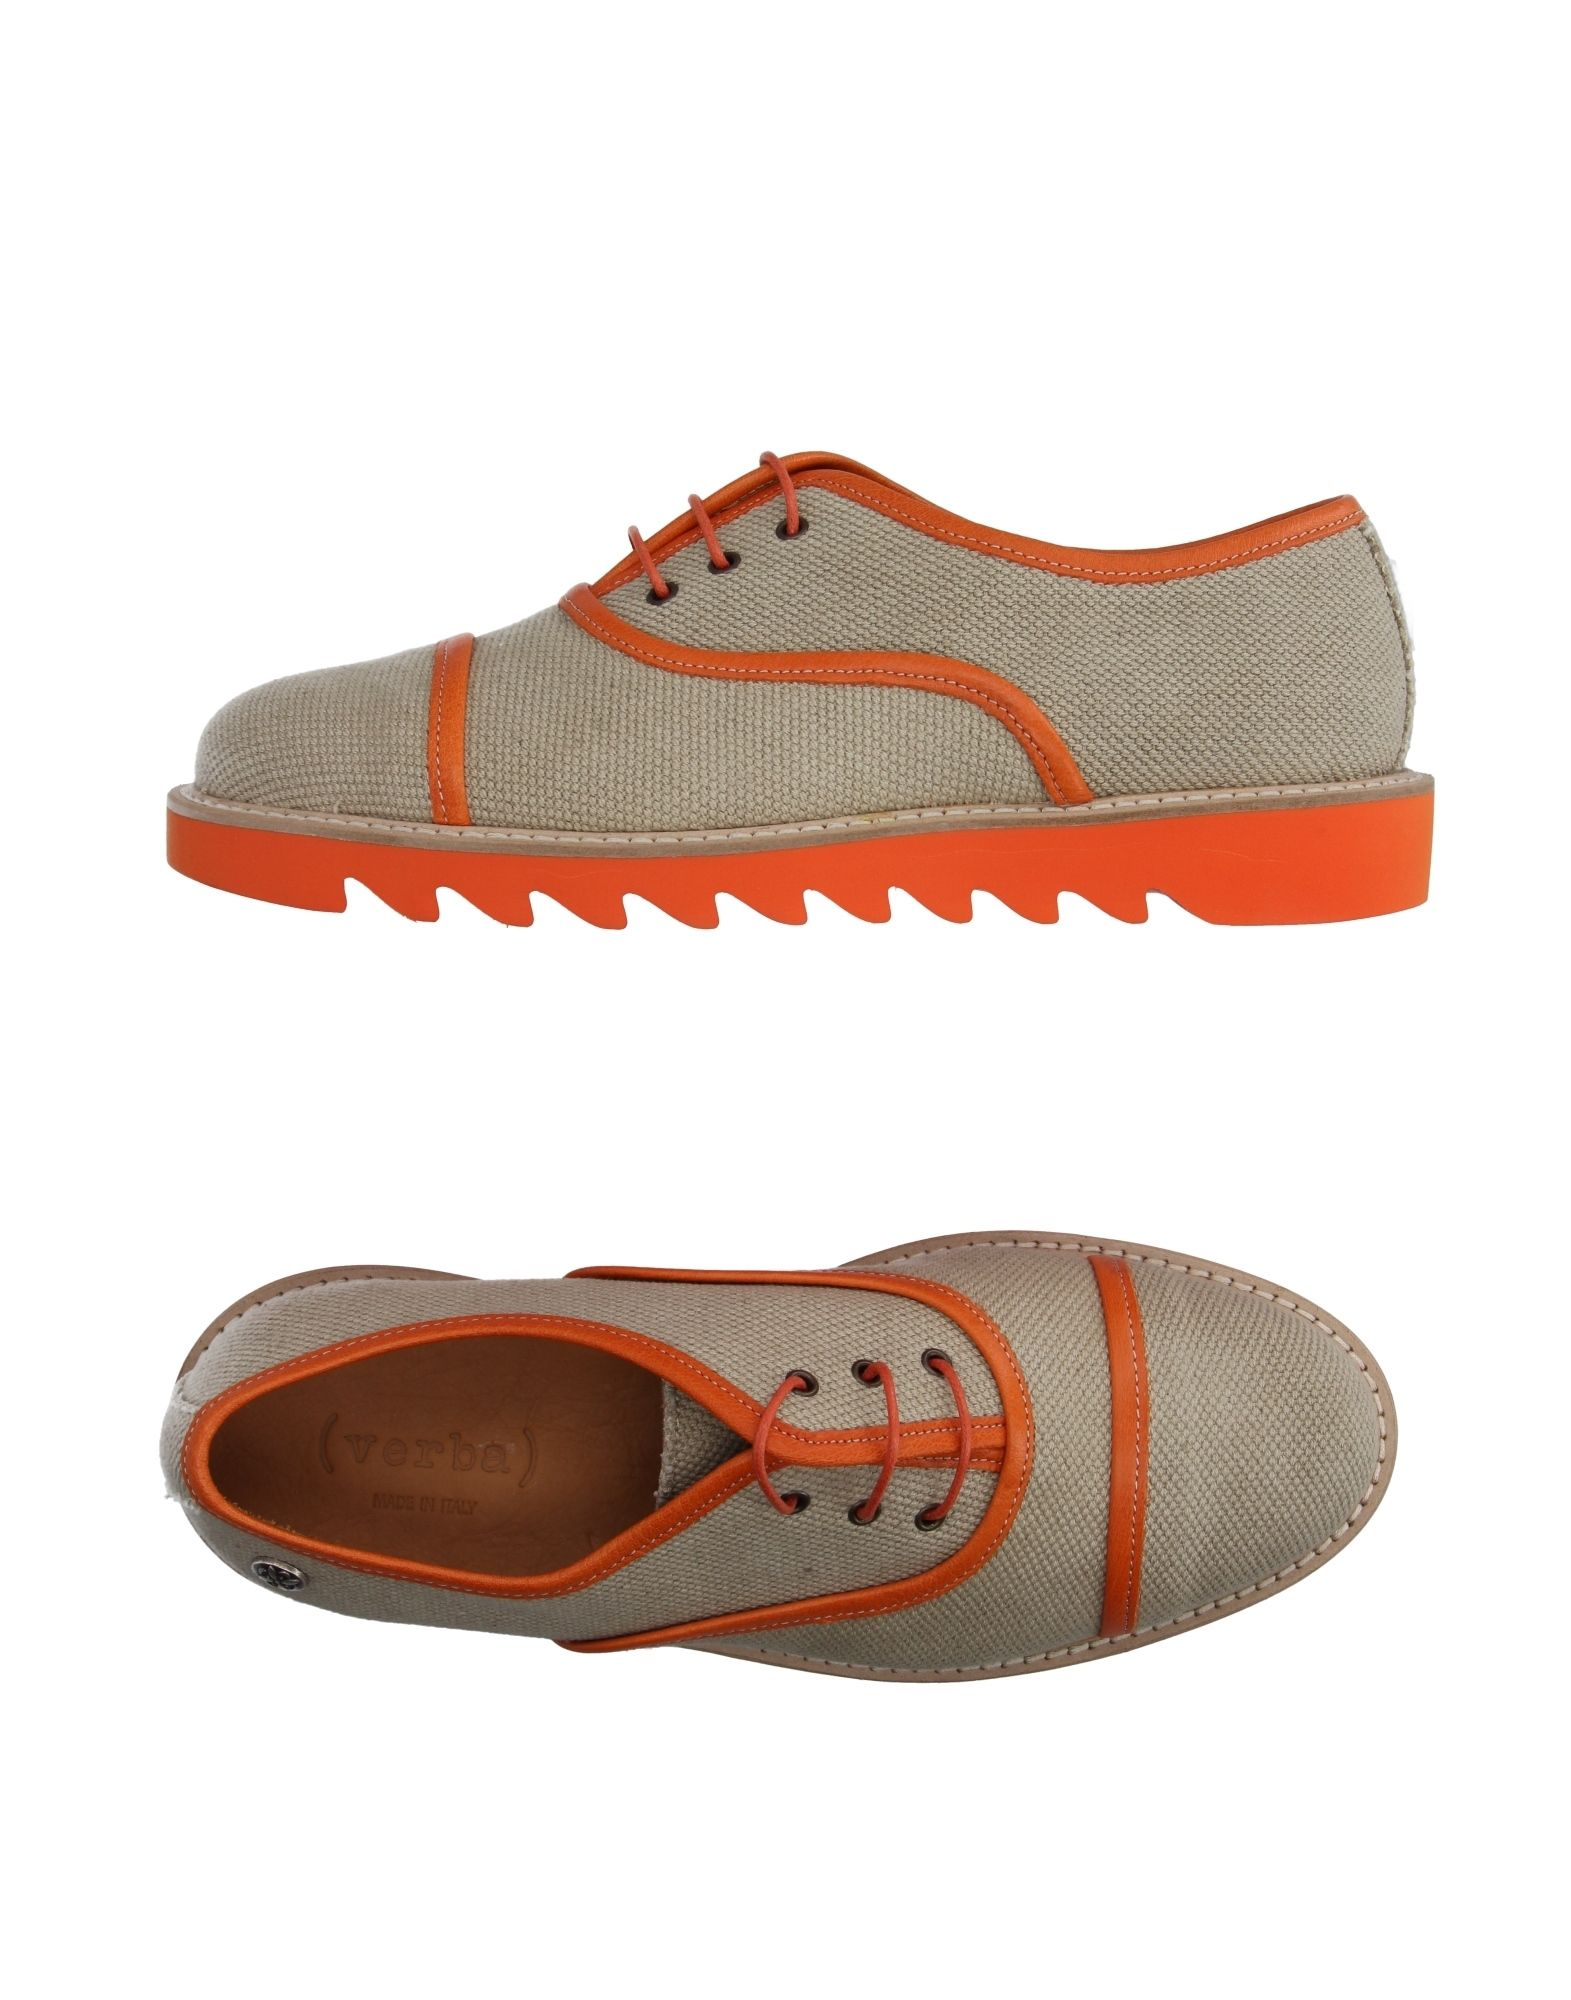 VERBA ( Verba ) Lace-Up Shoes in Sand